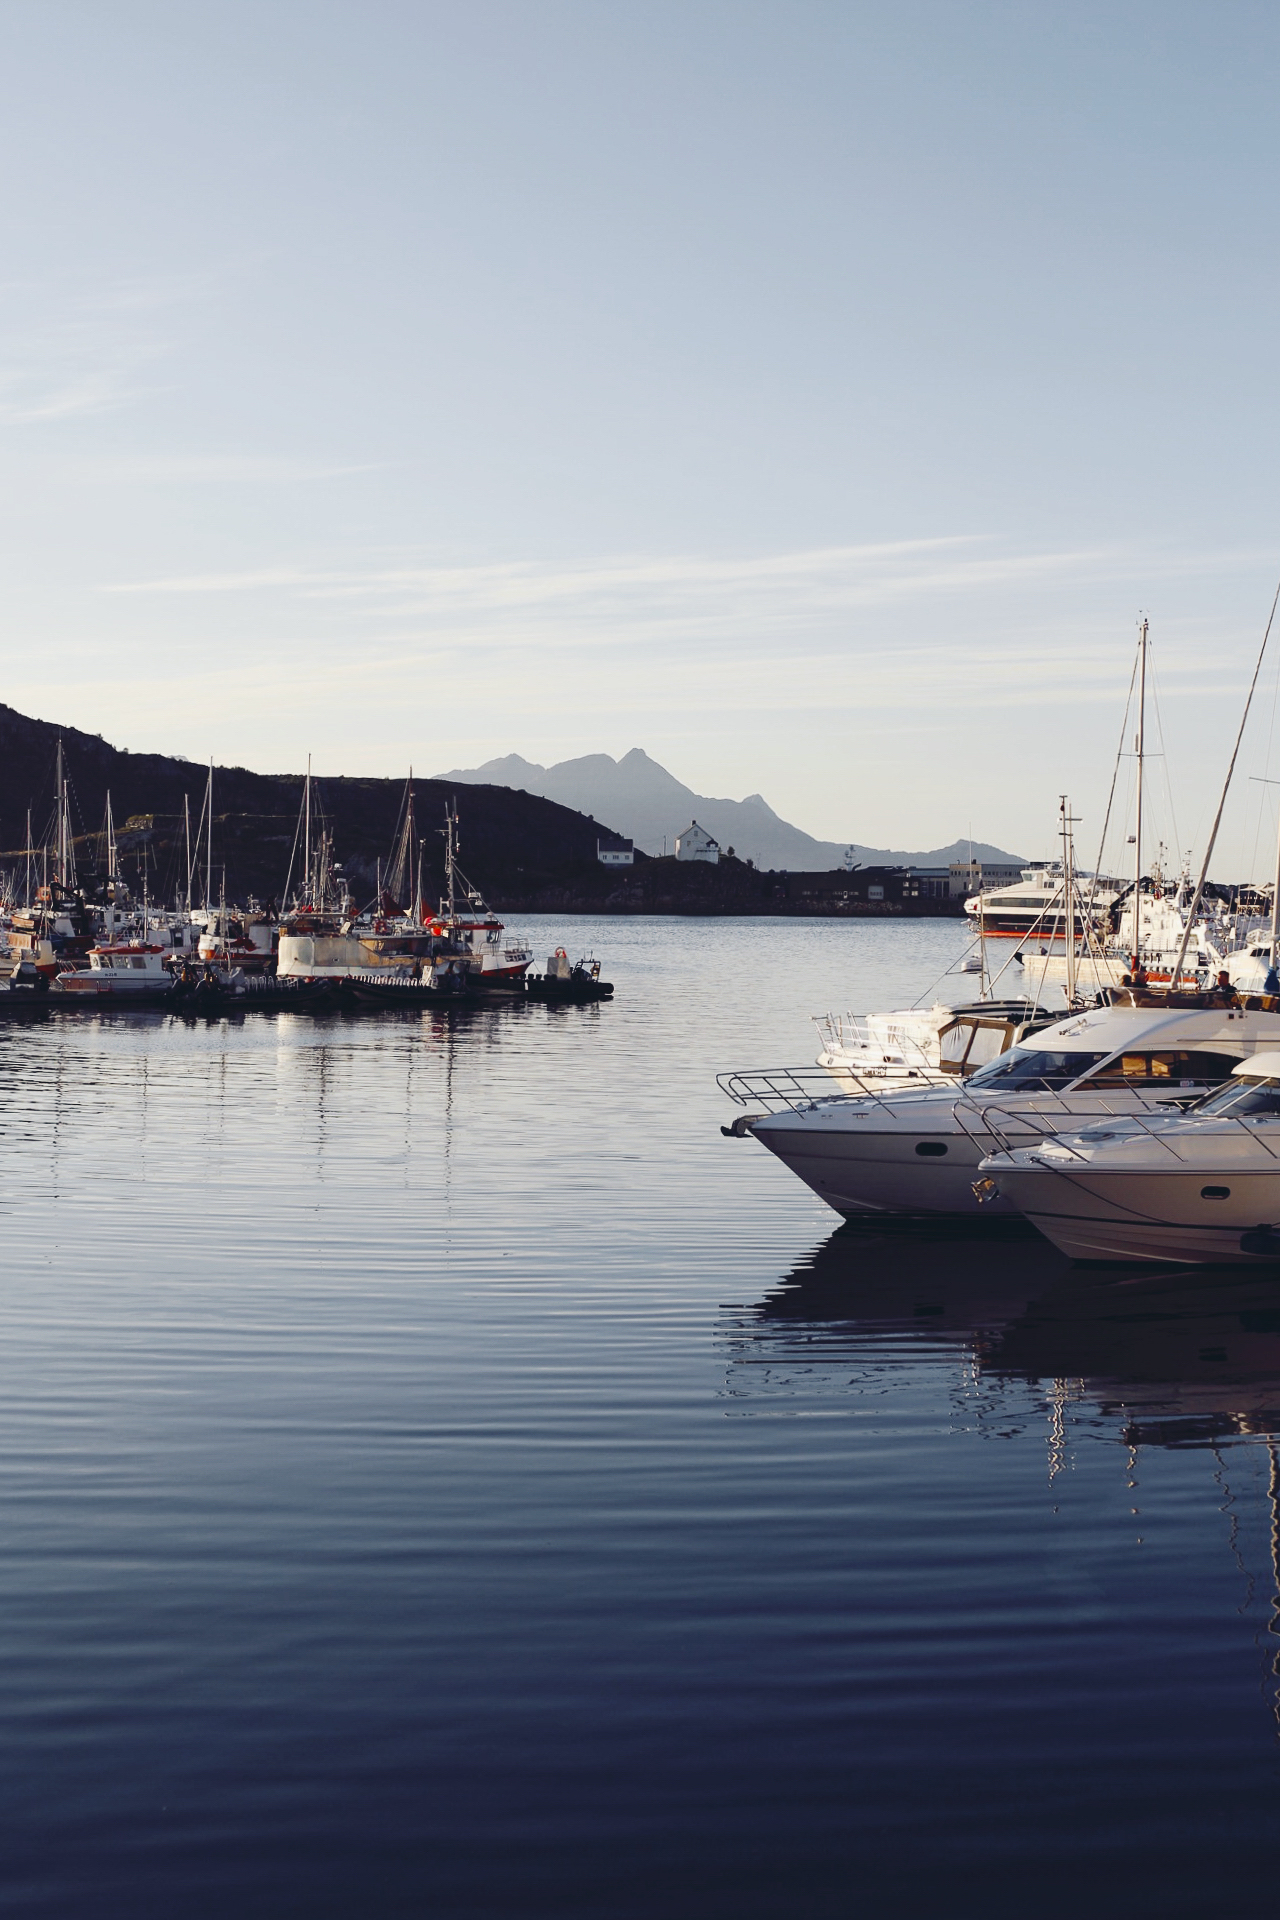 Bodø, Norway, July 2018